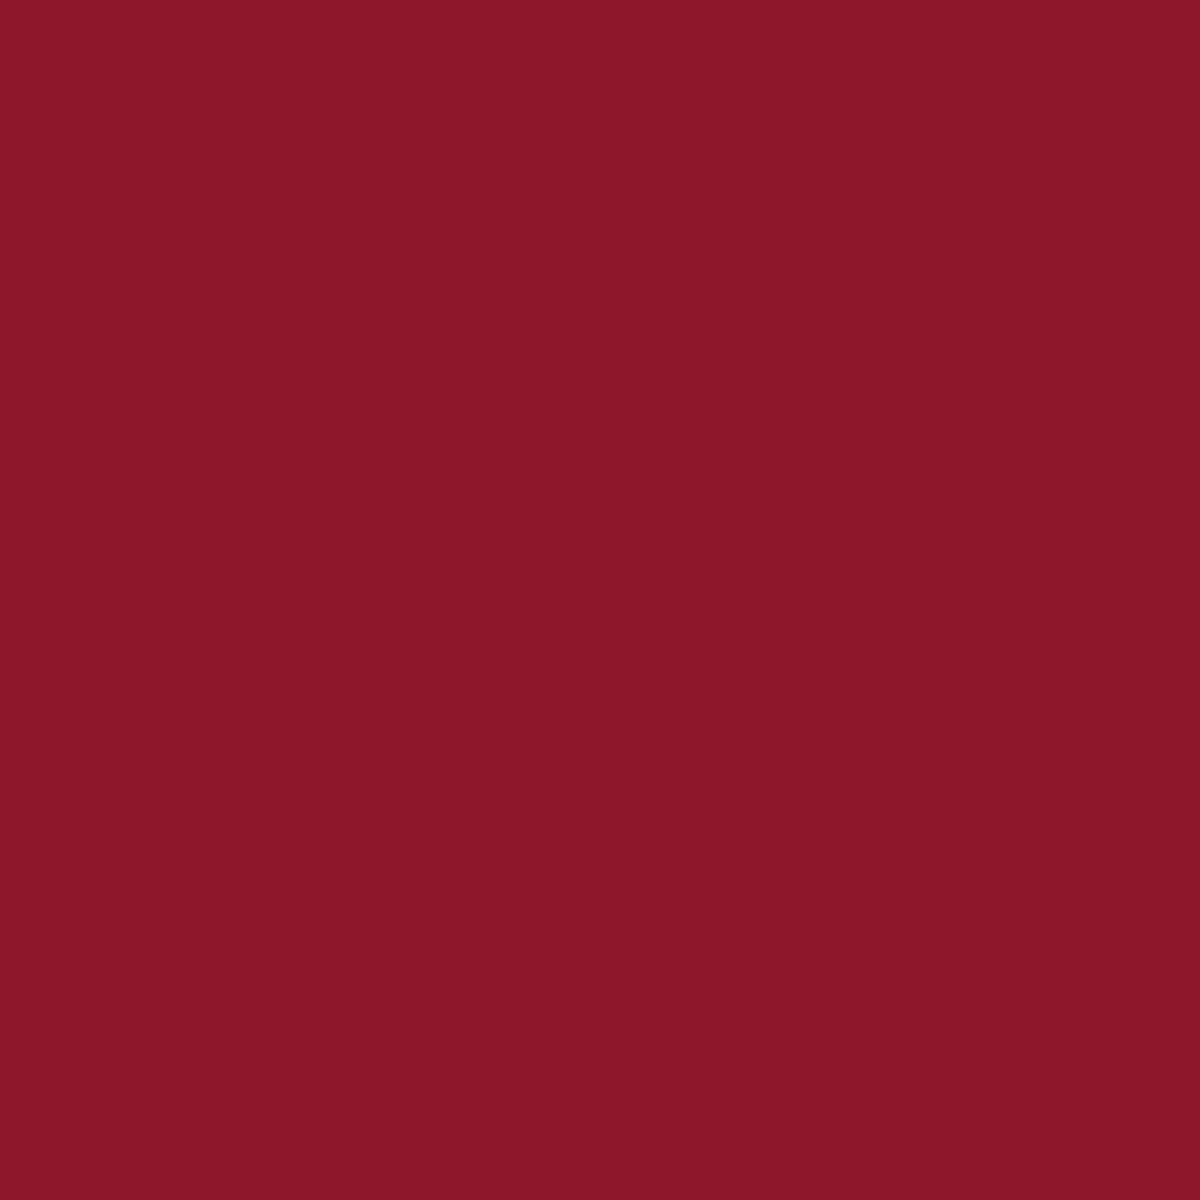 Ironworks Radiators Inc. farrow and ball rectory red paint finish